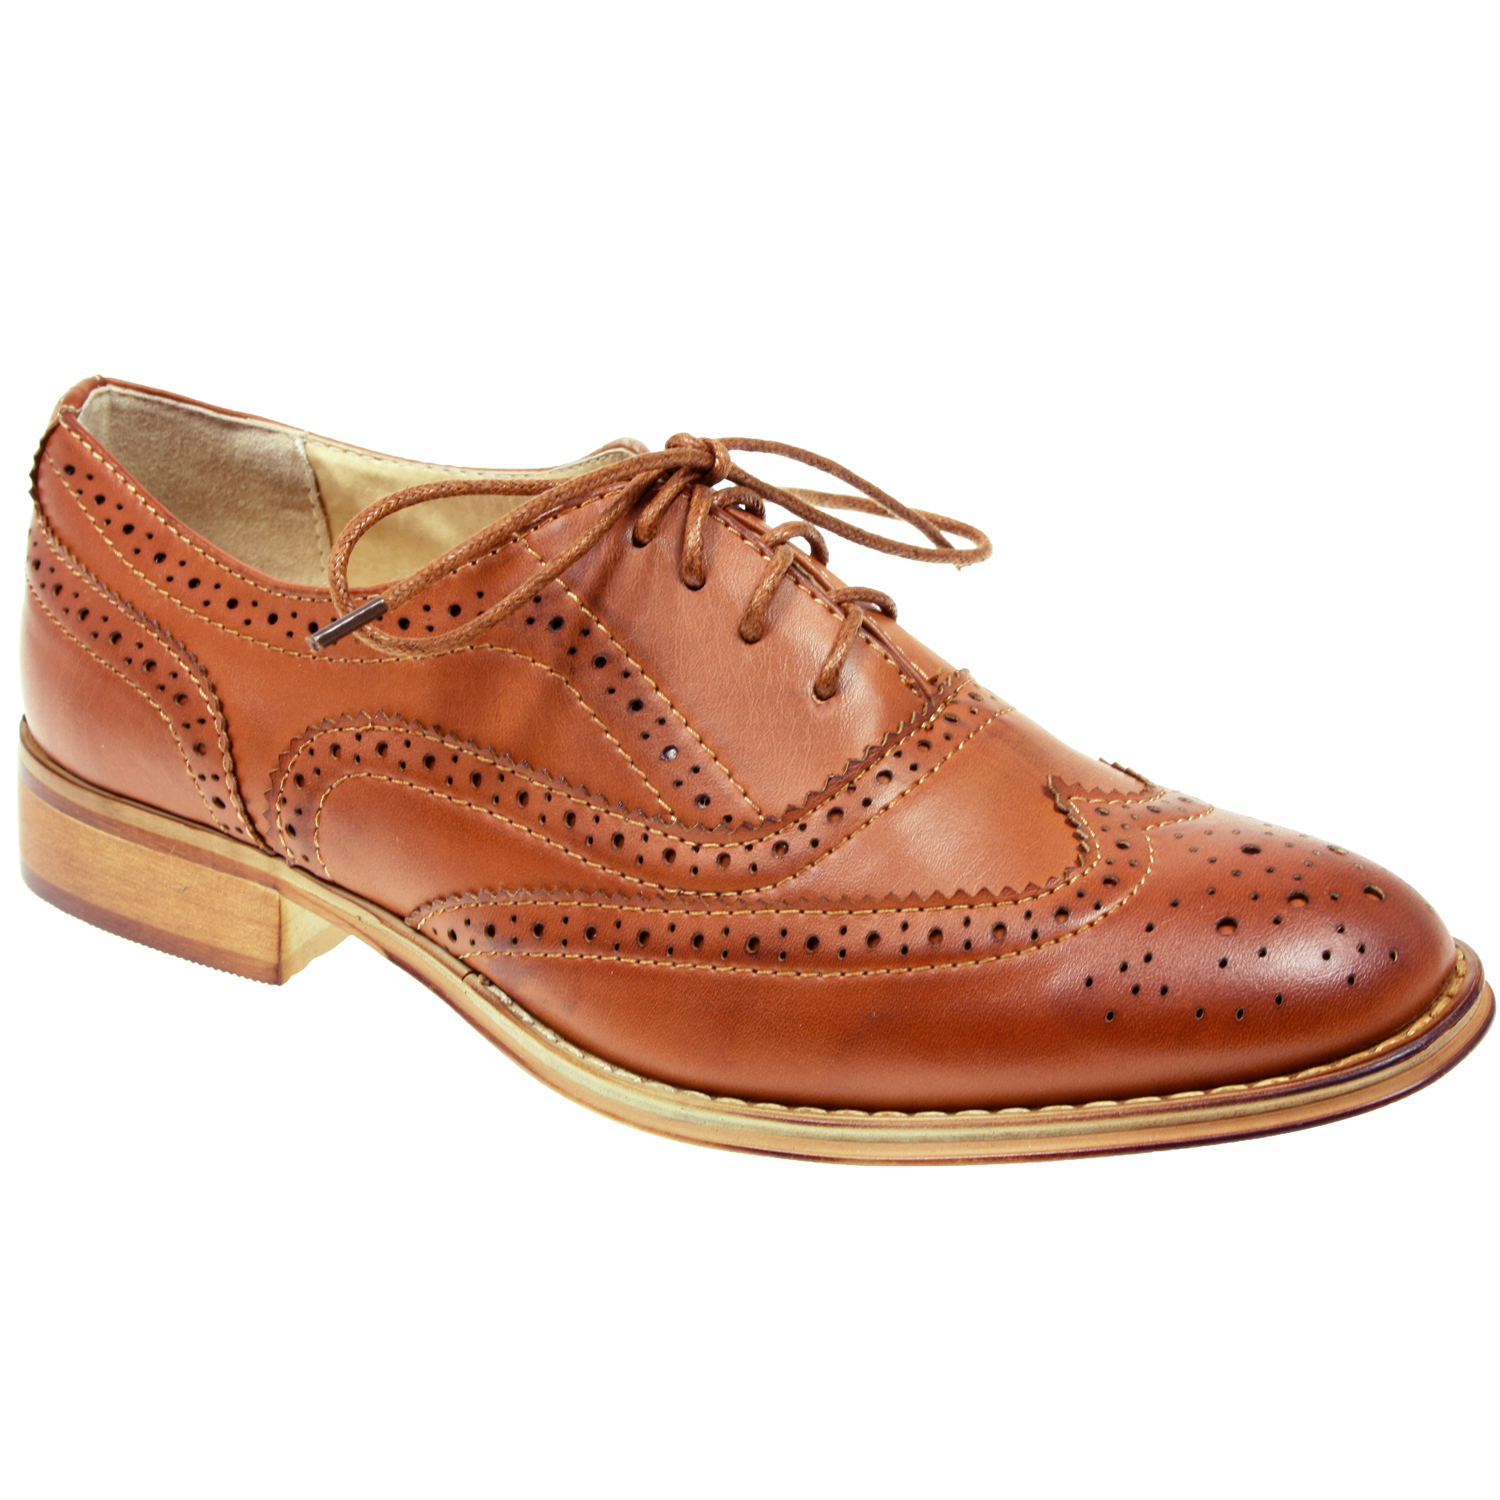 WOMENS-LADIES-LACE-UP-FLAT-OFFICE-FORMAL-SCHOOL-OXFORD-BROGUE-BLACK-TAN-SHOES